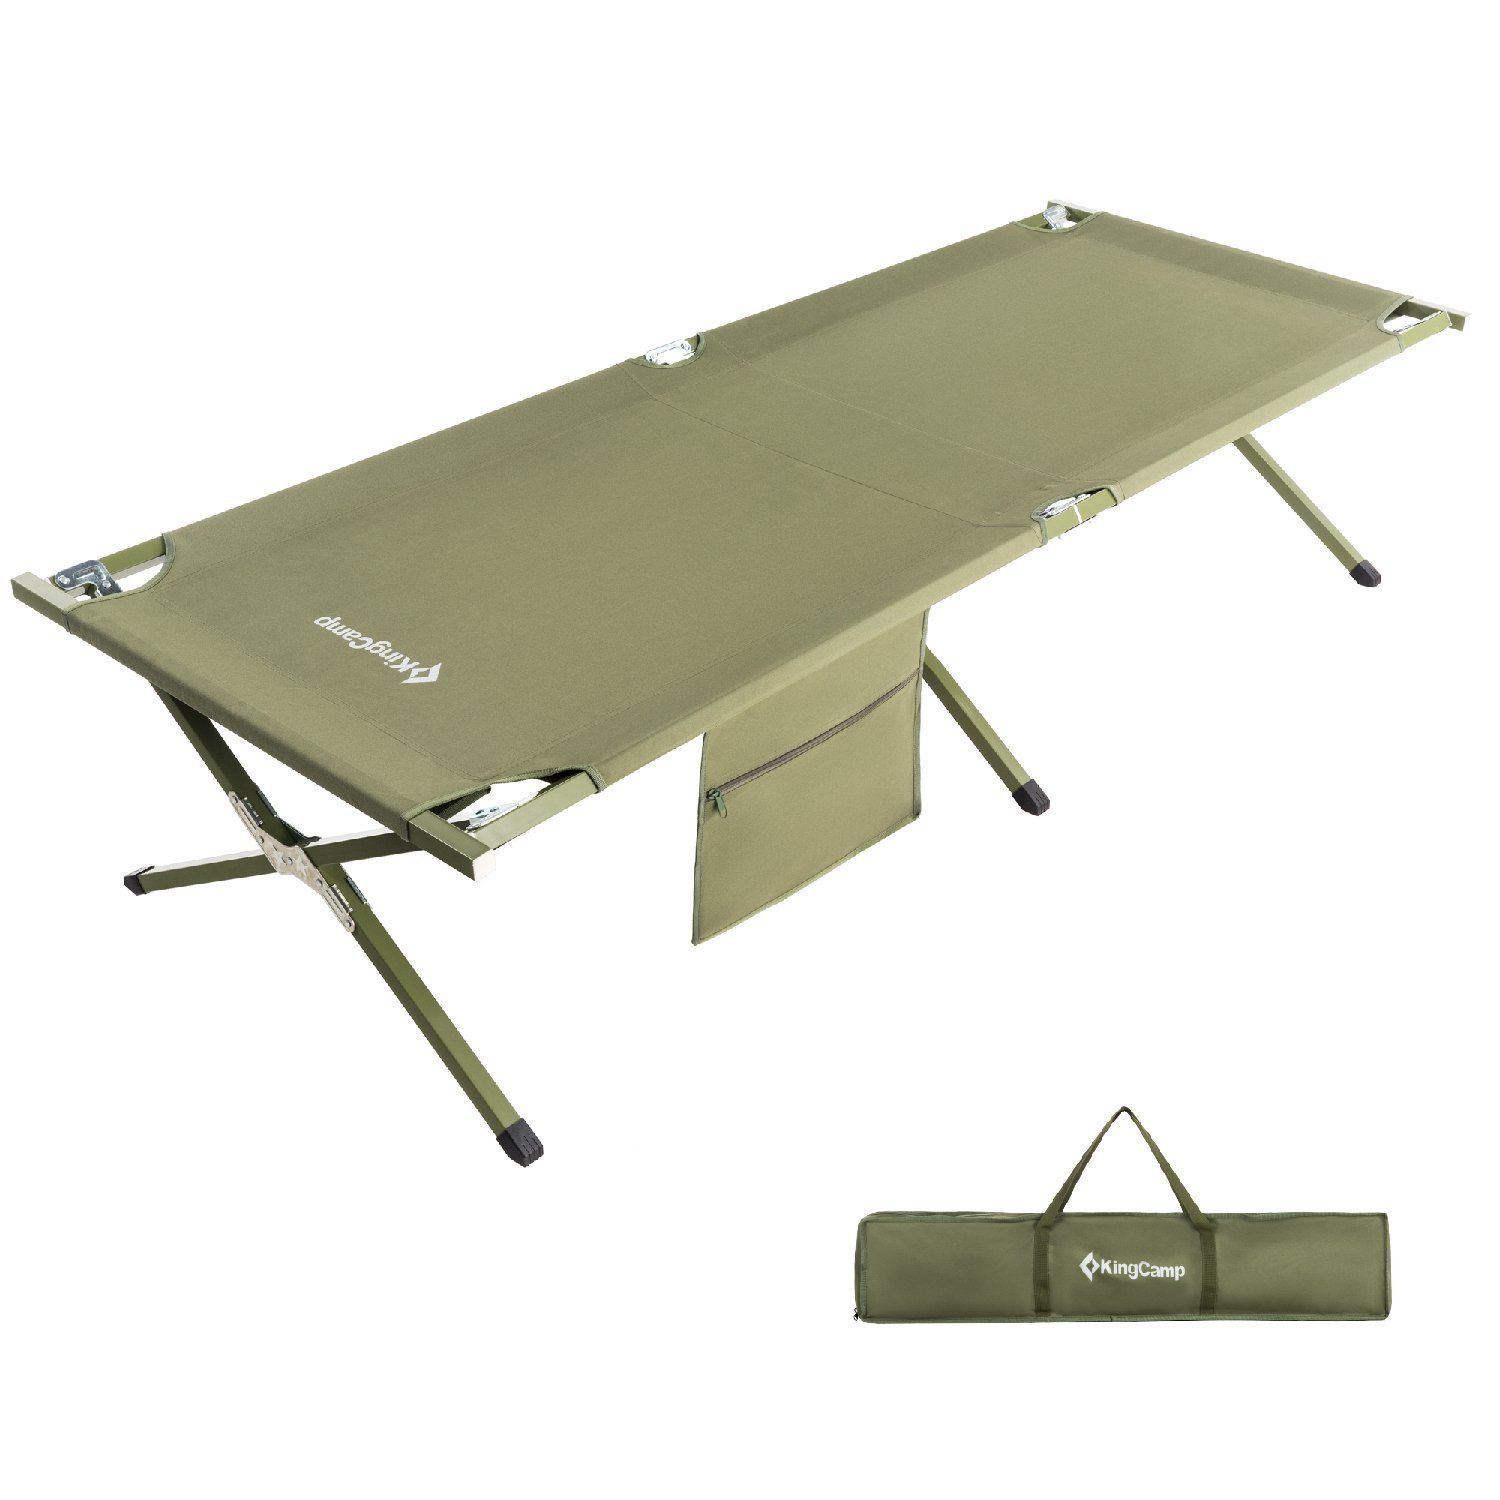 KingCamp Camping Cot OVERSIZED Heavy Duty Folding Bed Anodized Steel Frame with Washable Mildew Resistant Polyester Fabric, Support 300 lbs Carry Bag Included